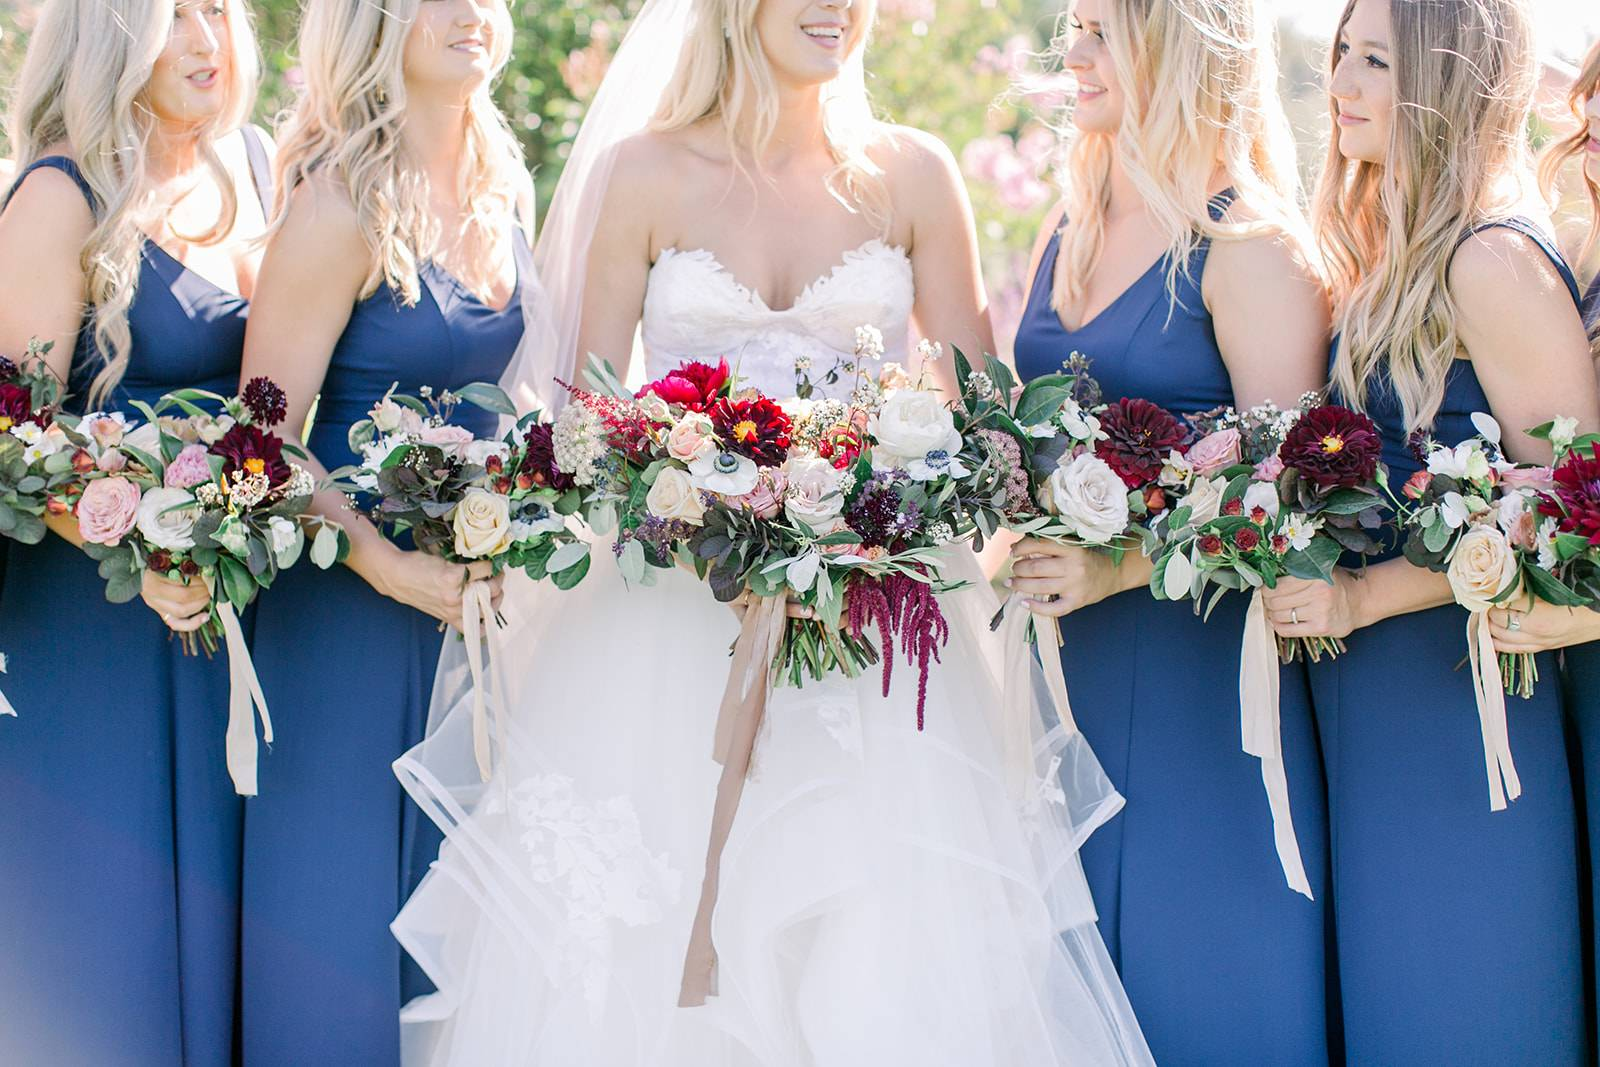 Carly is Standing with Her Bridemaids and Holding April Flowers | The Wedding Standard